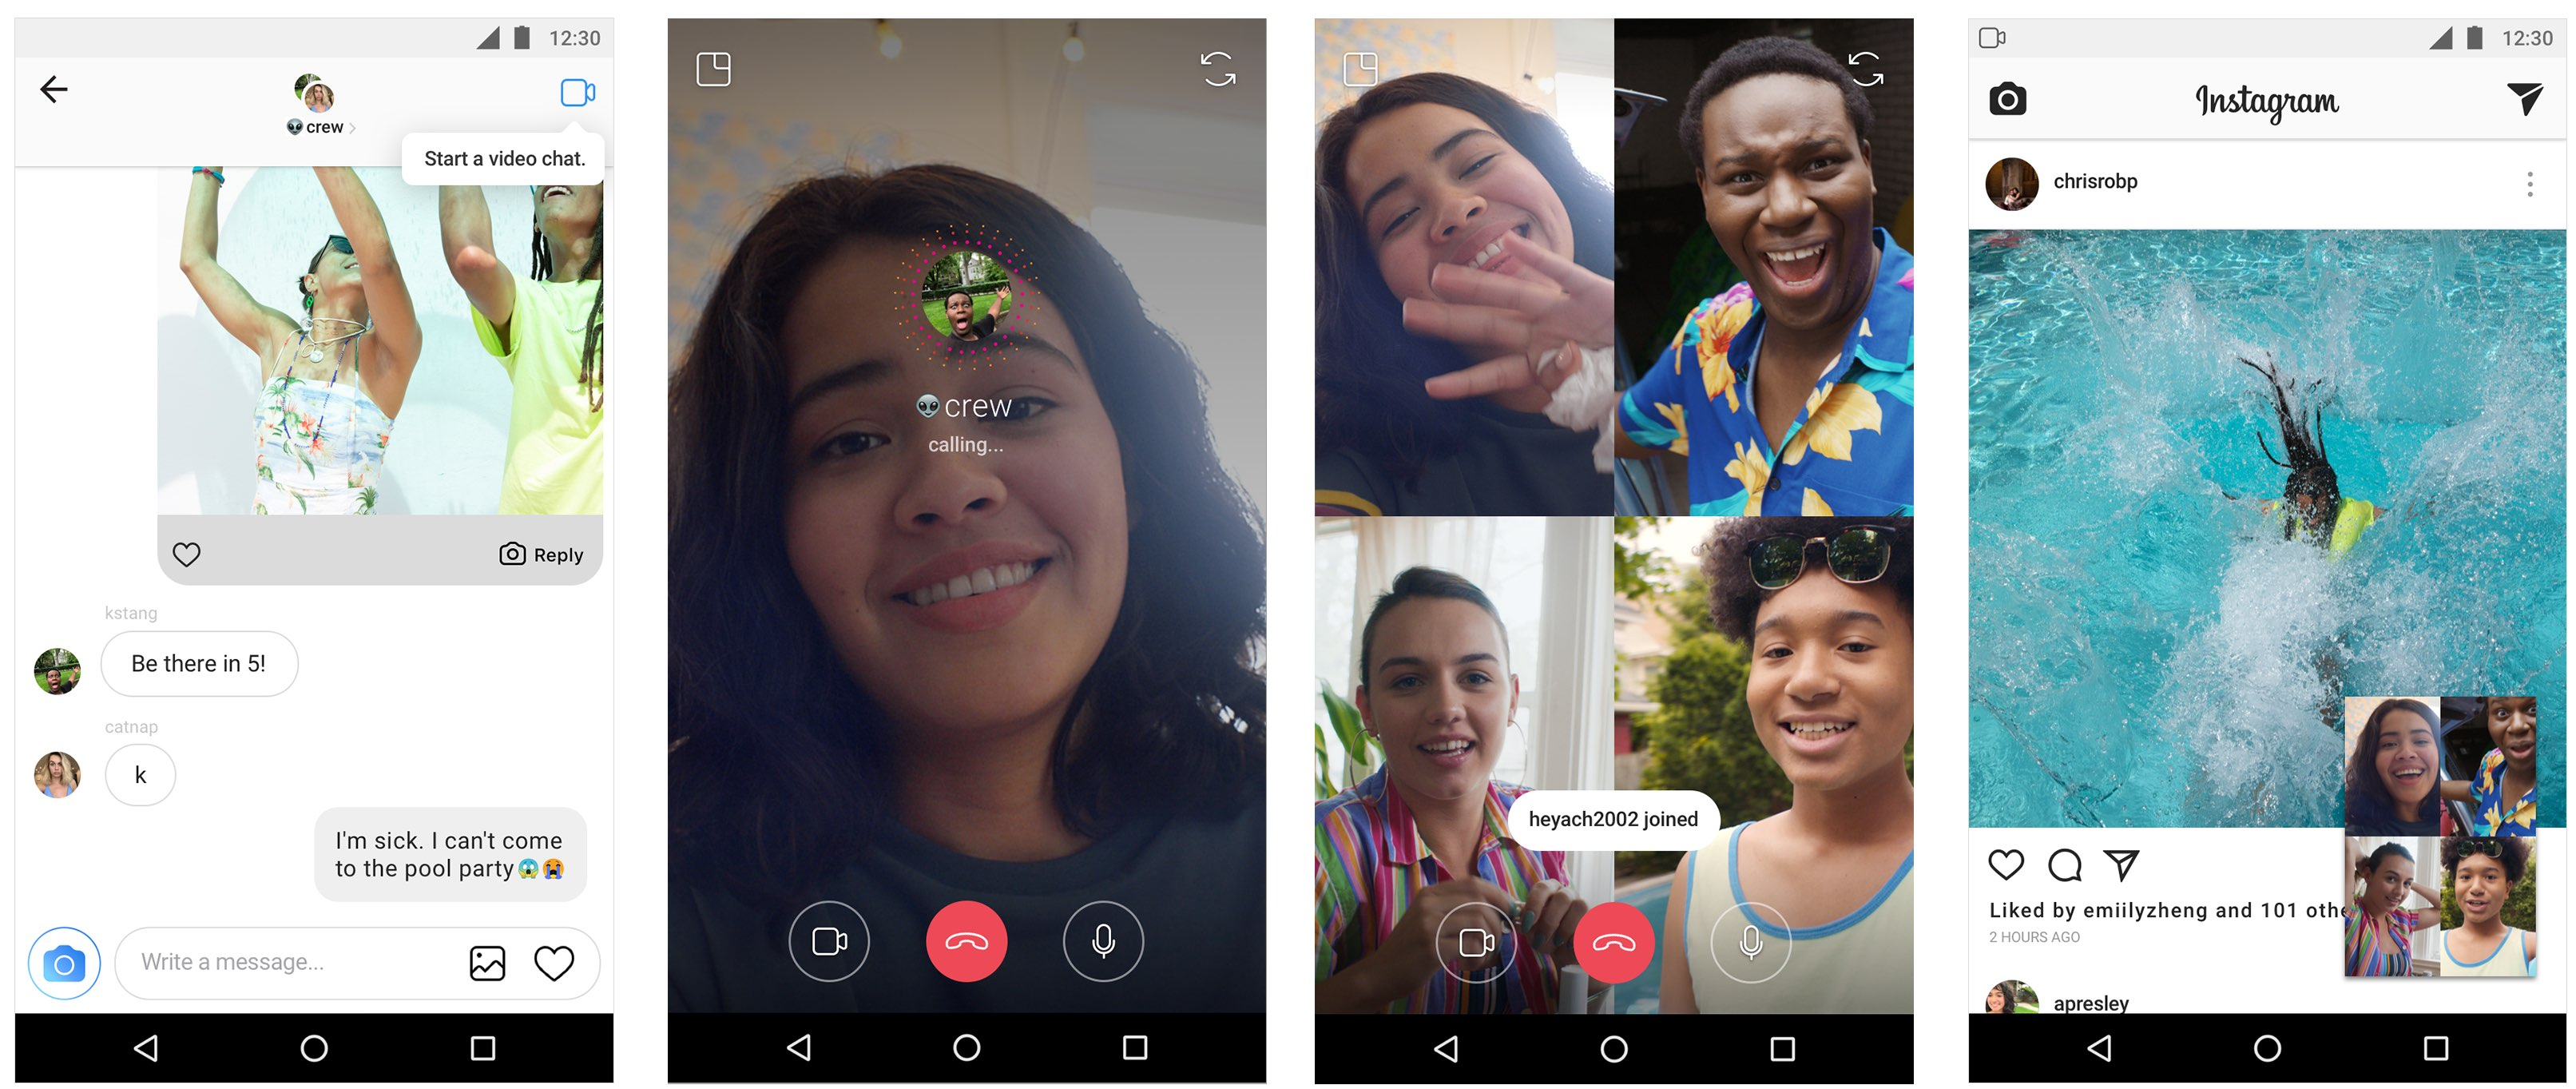 Video chat is supported across Instagram for iOS and Android